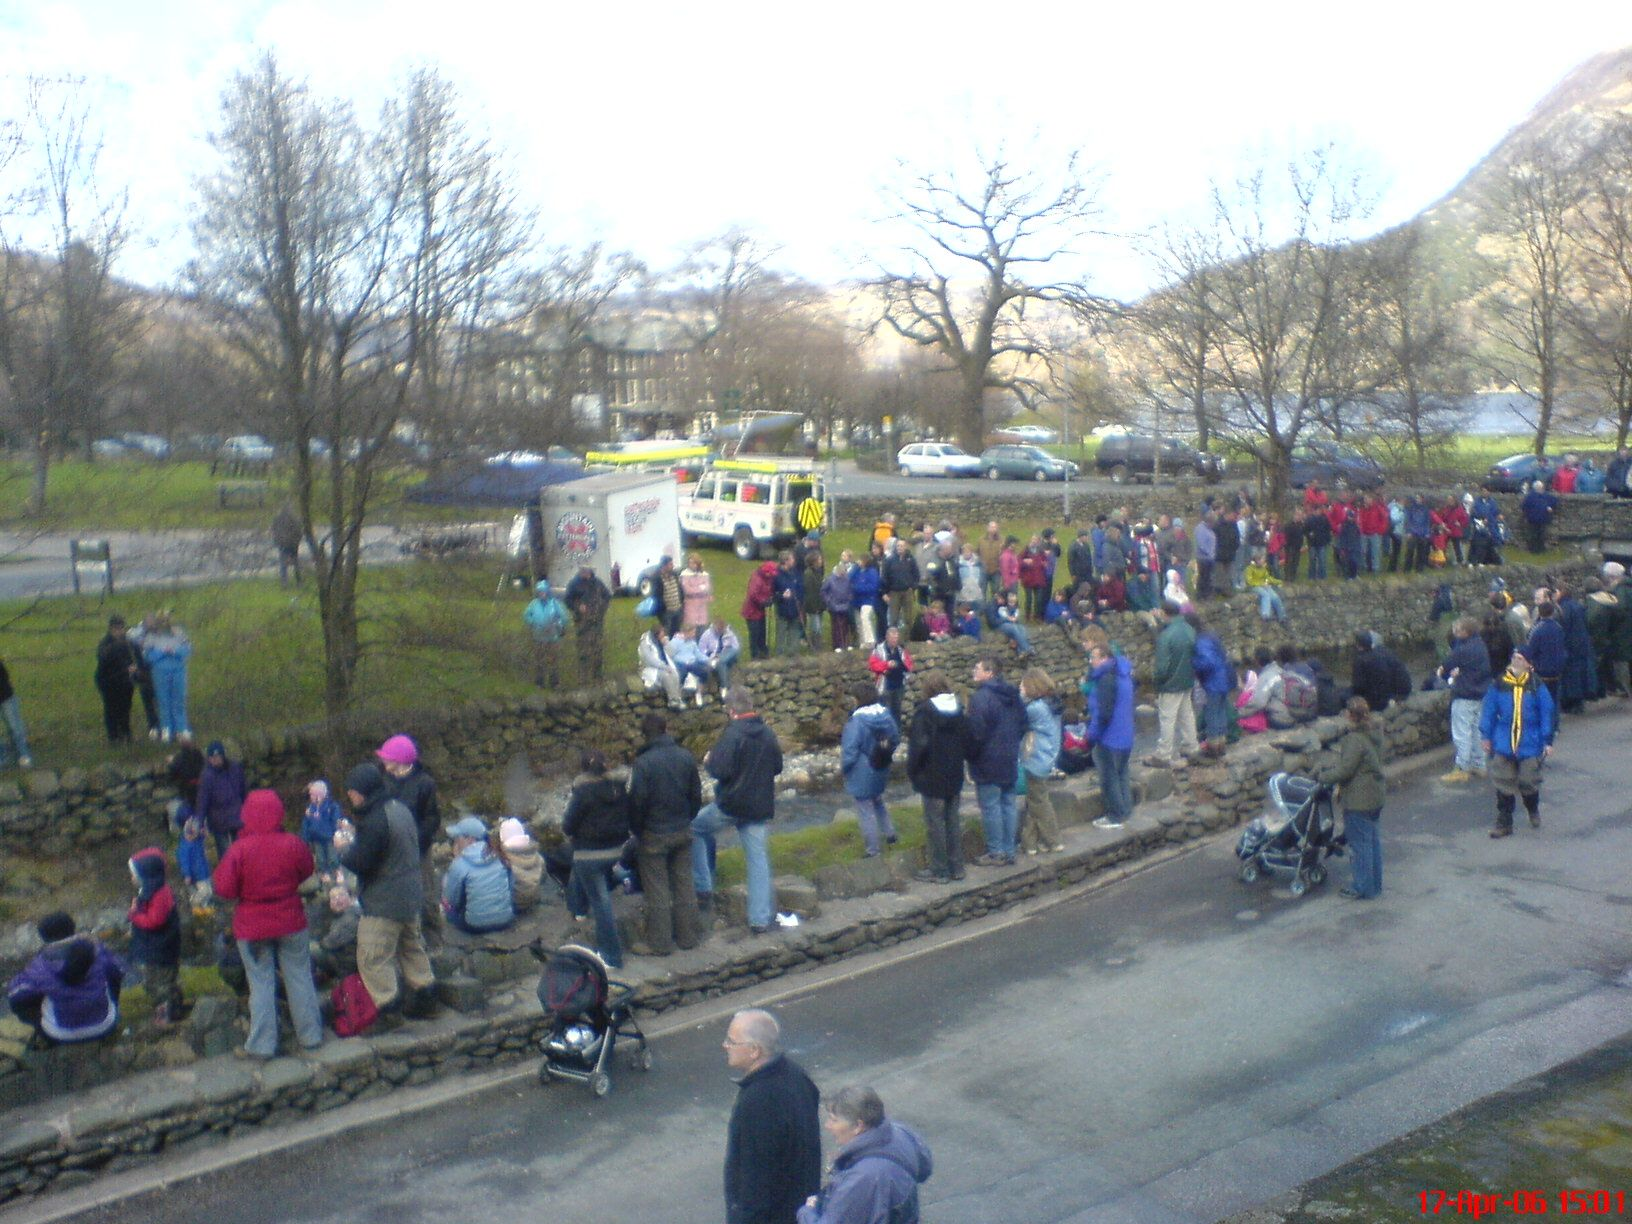 The annual Patterdale Mountain Rescue Duck Race. The most surreal day of the year in Glenridding.